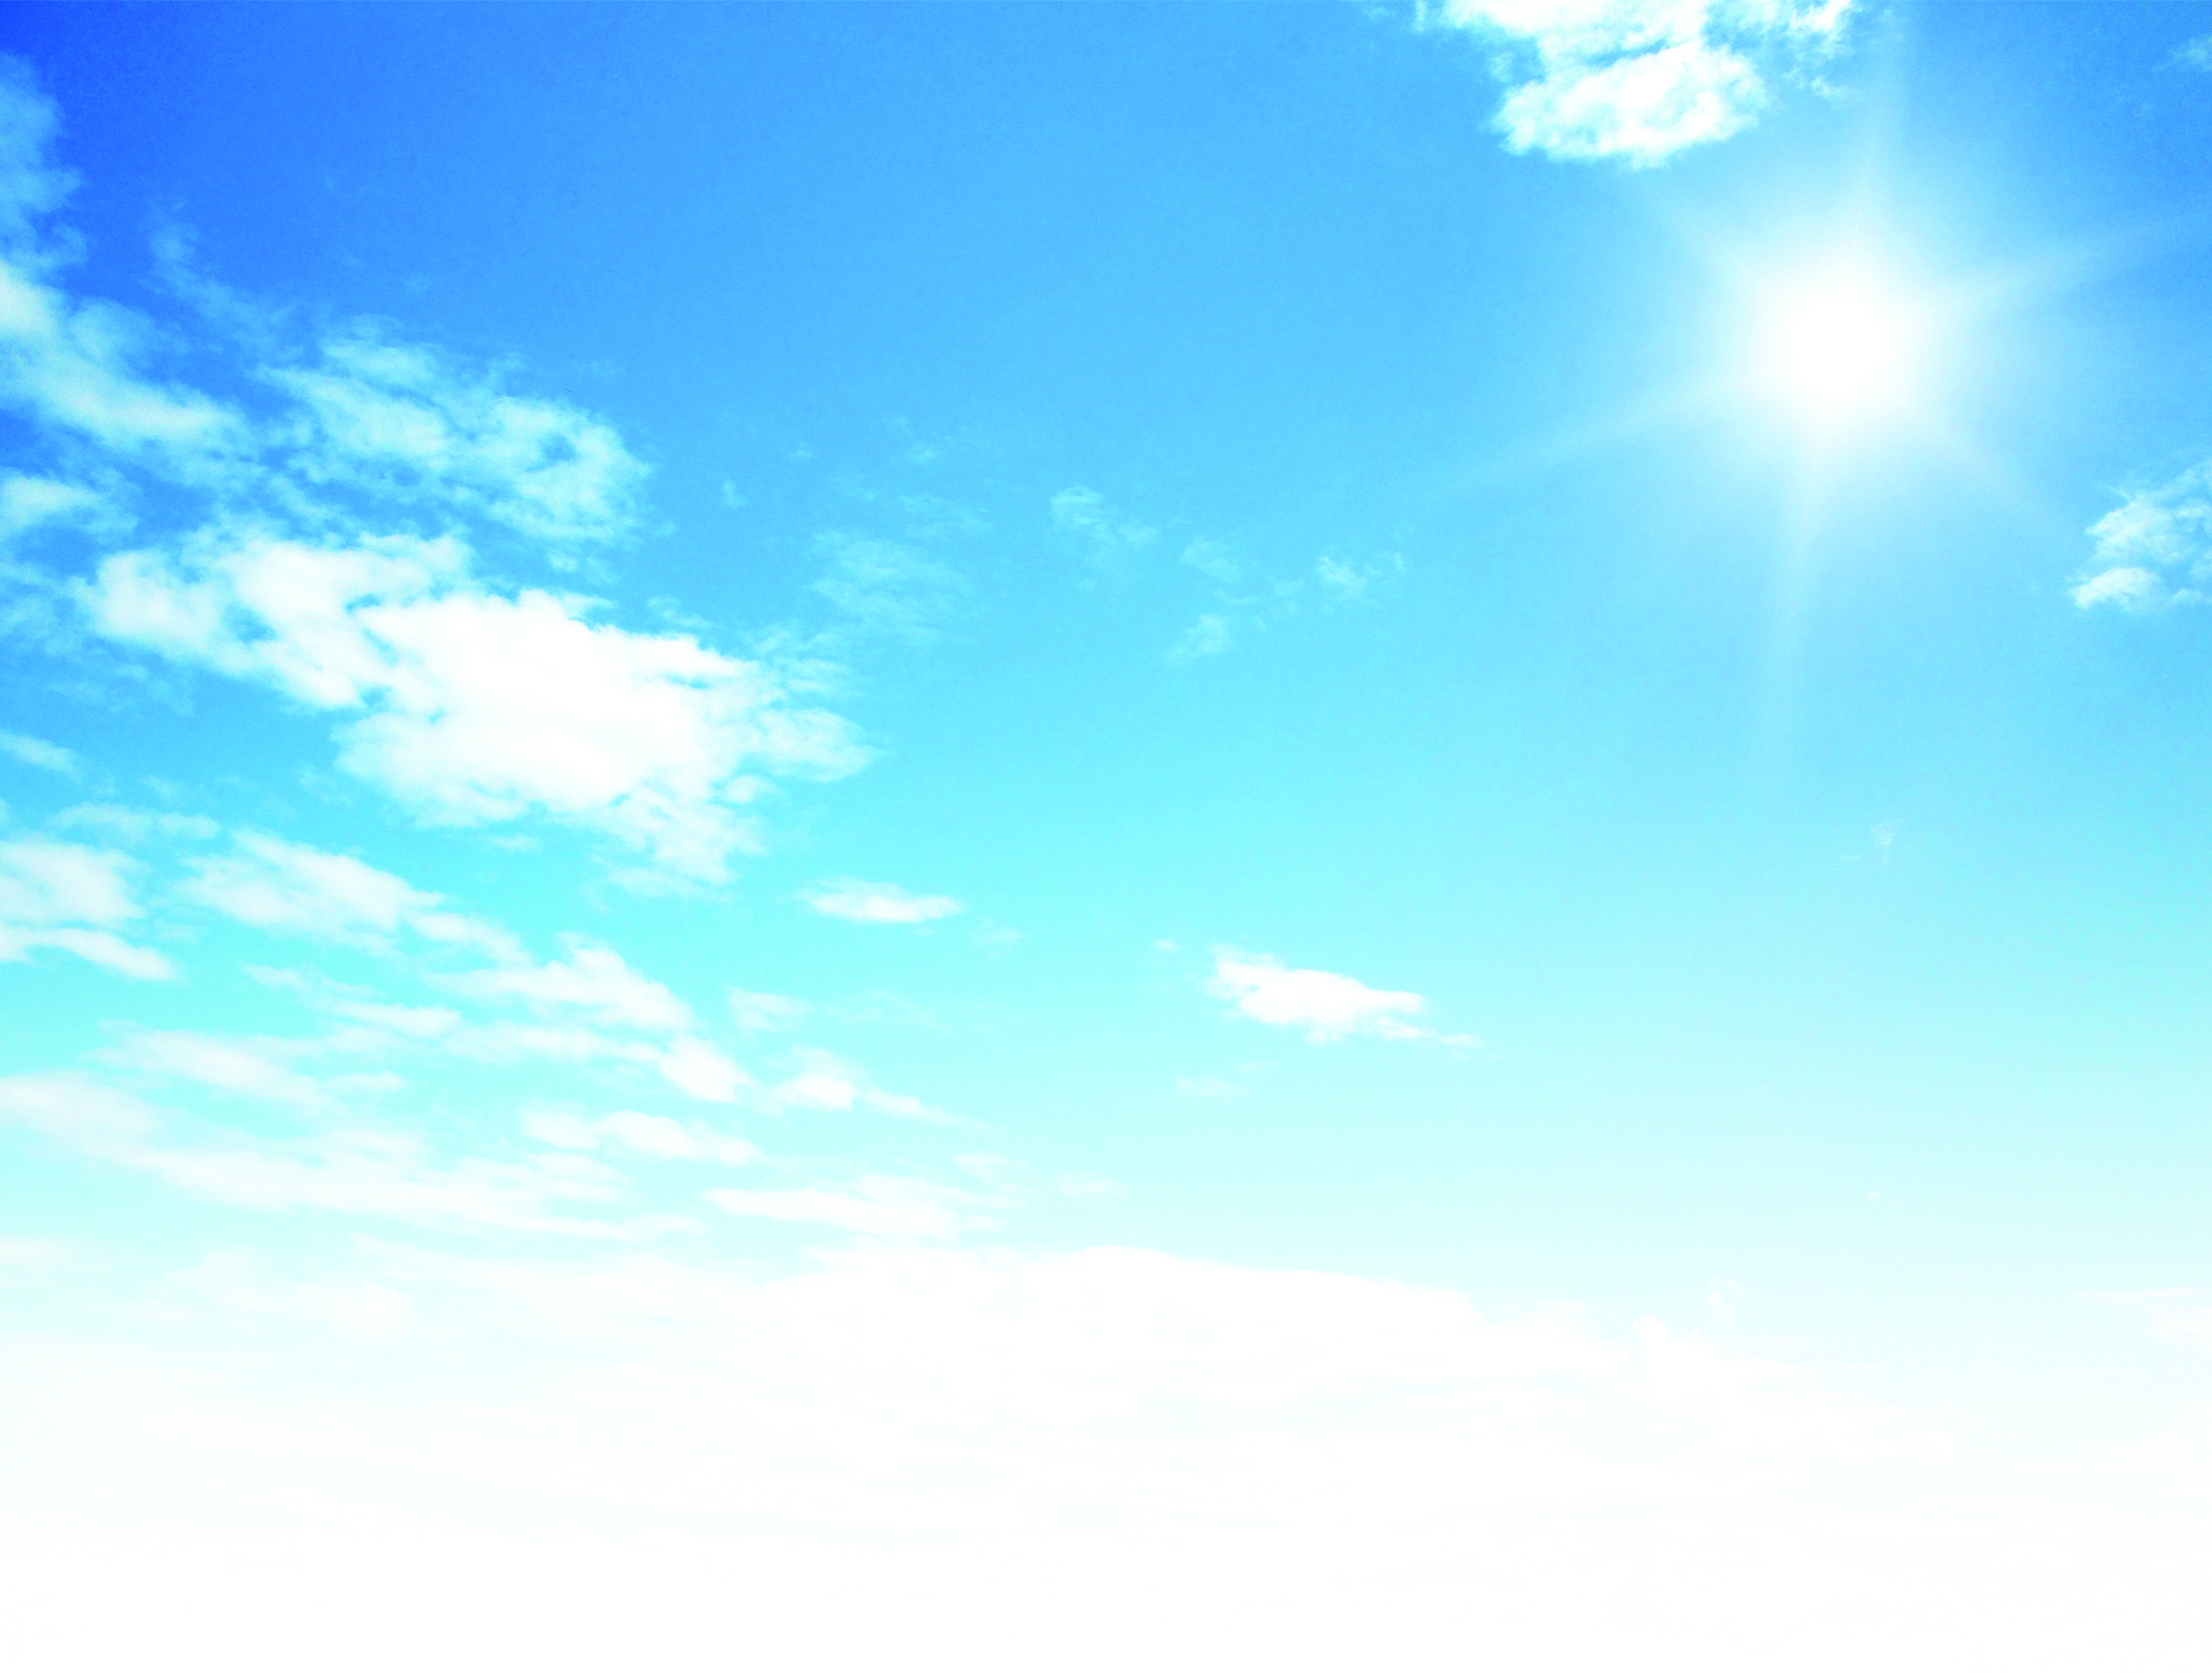 D background images - Blue Sky Background With Tiny Clouds